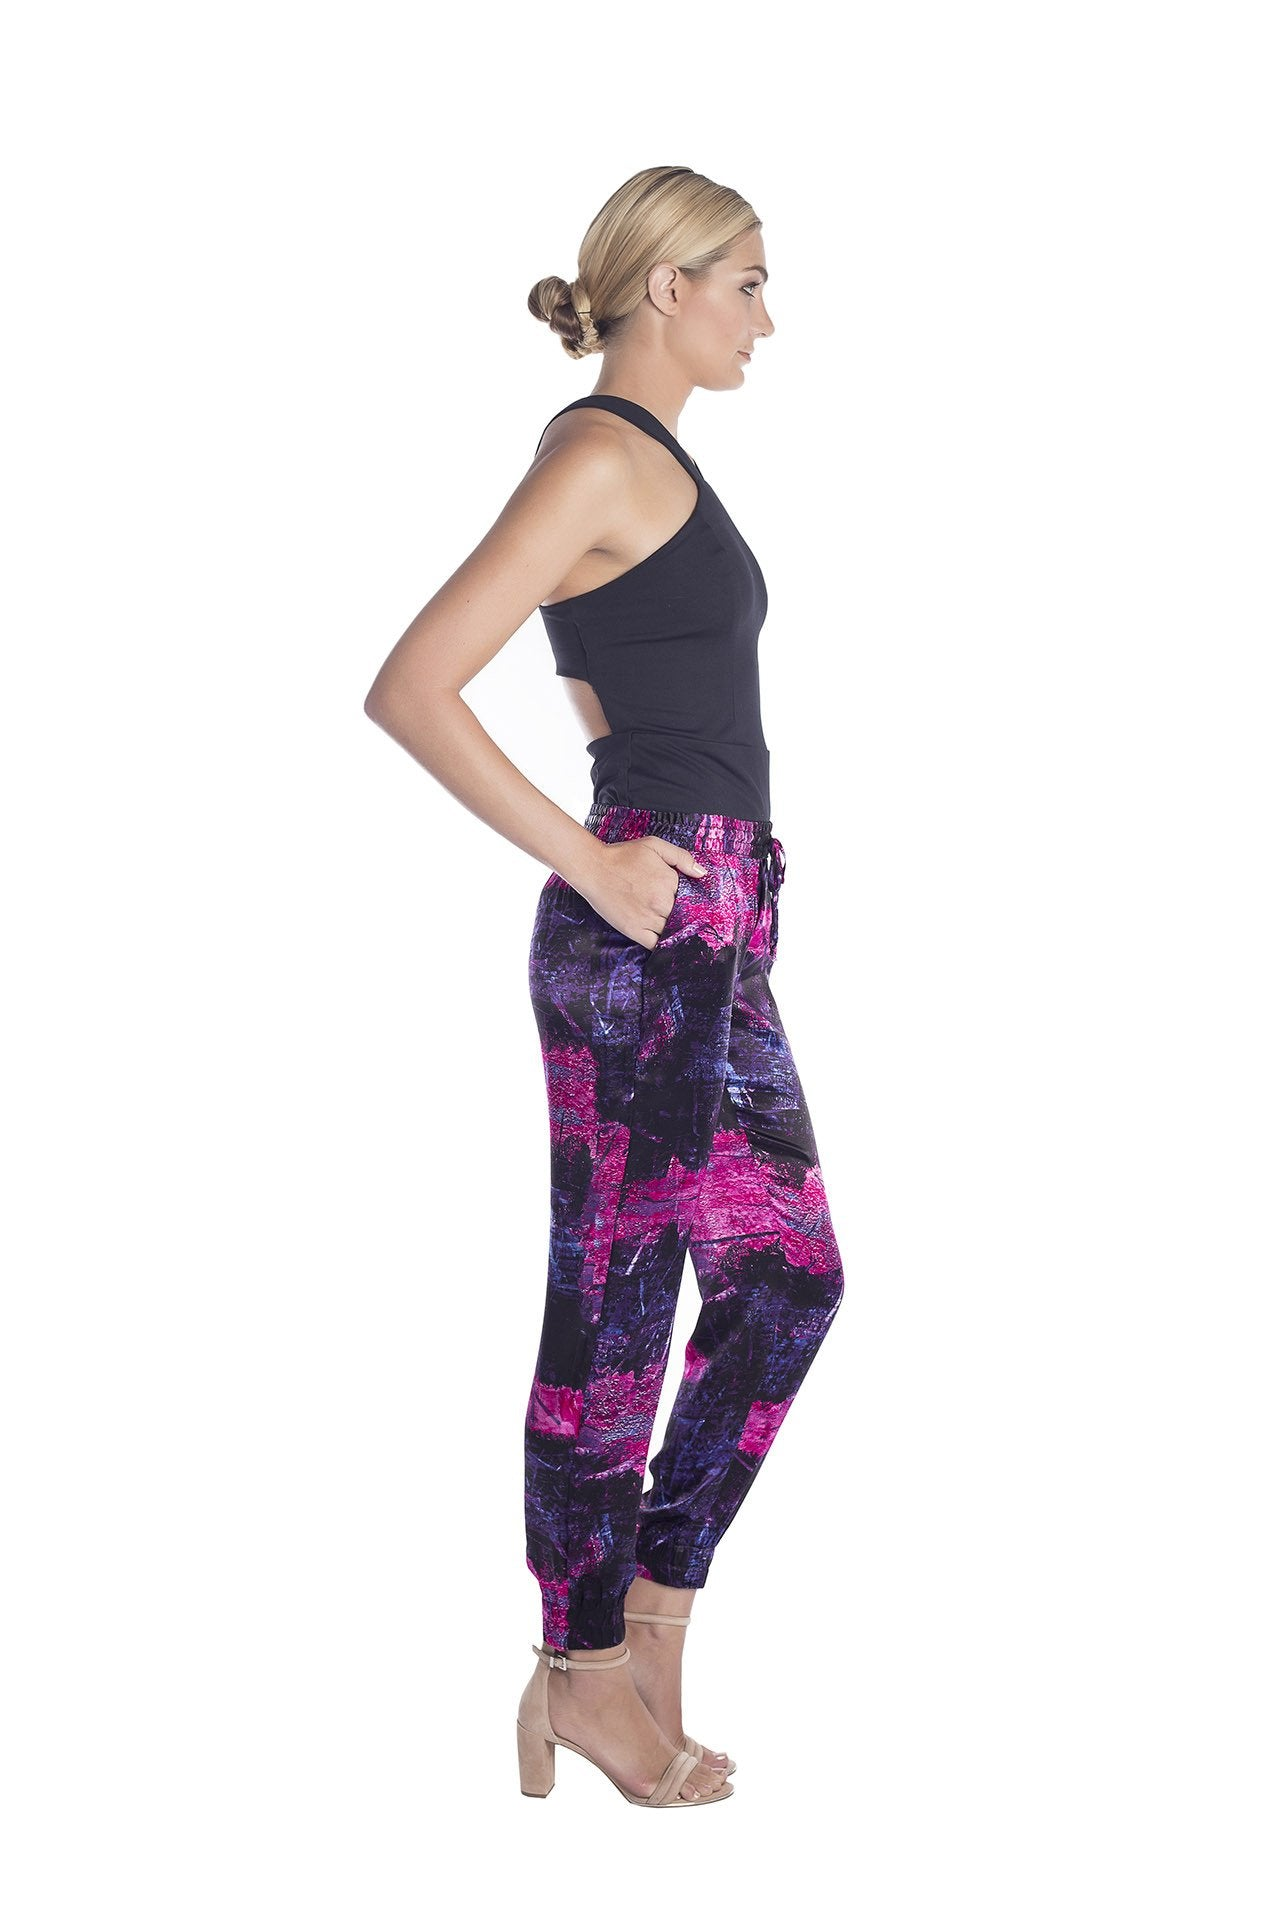 Allover Pant - Rose Purple Bar Print Pants - artTECA